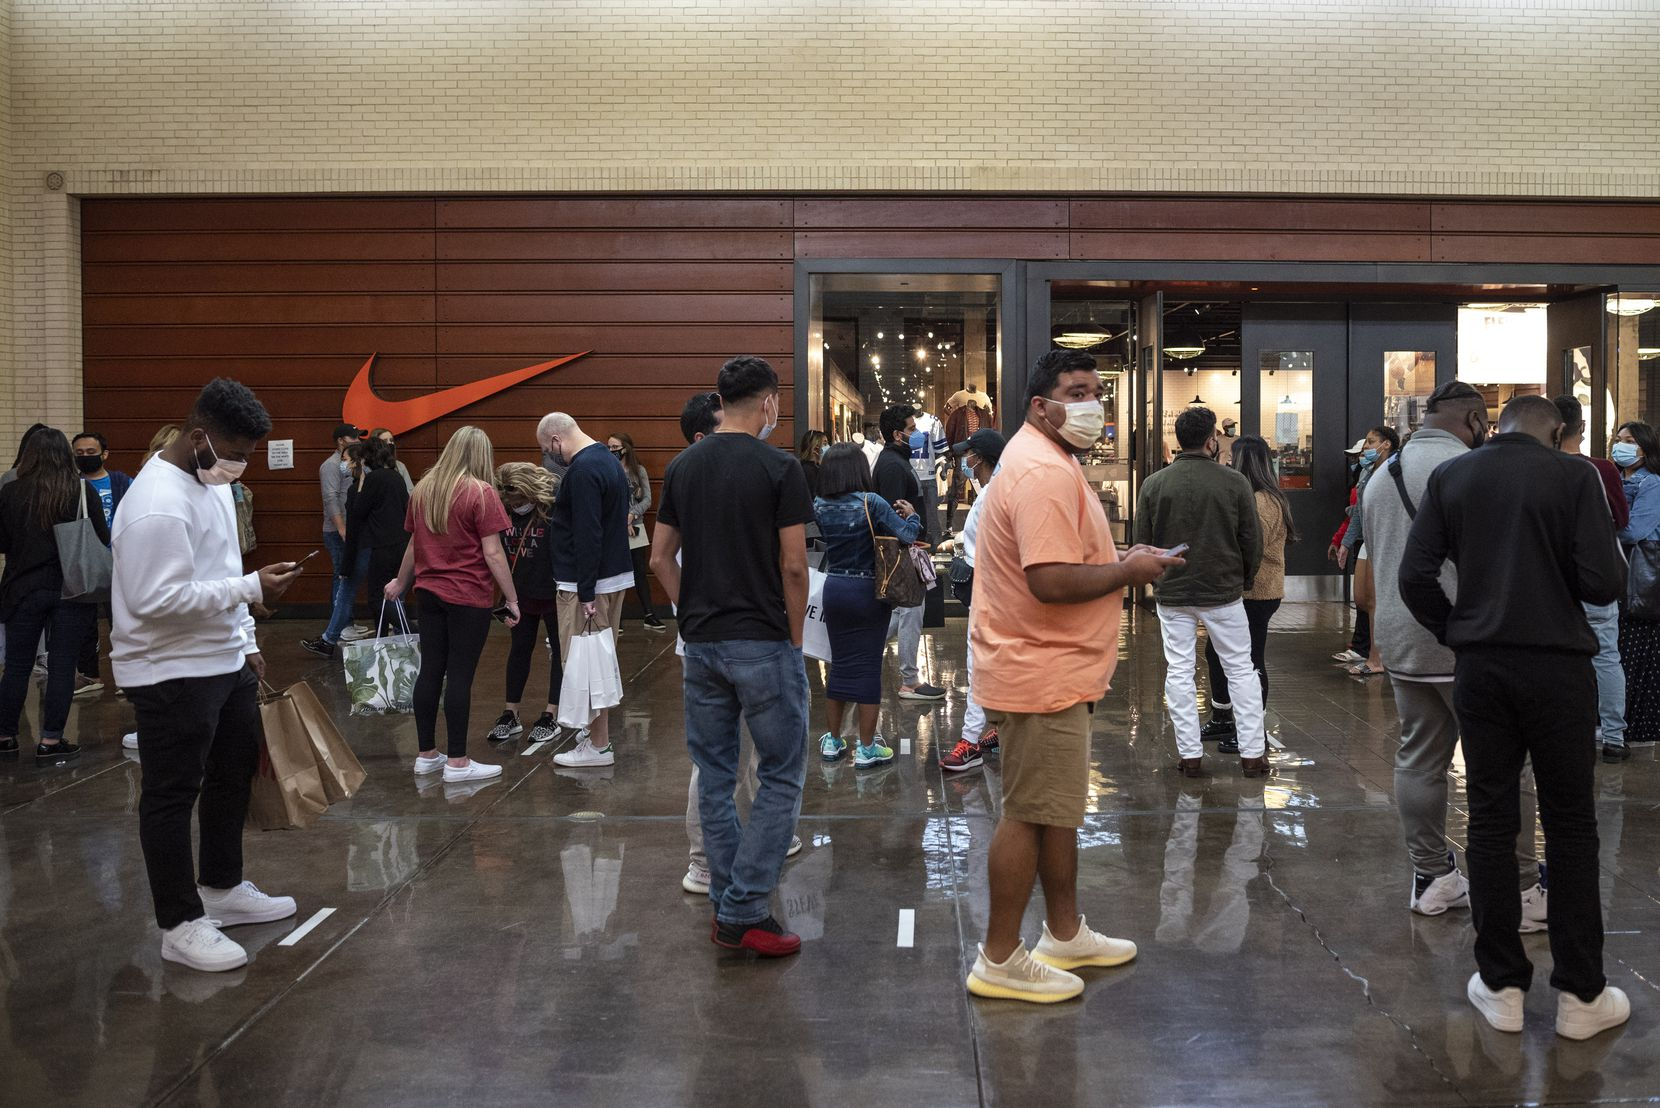 A long line of shoppers snaked in front of the Nike store during Black Friday at NorthPark Center in Dallas.